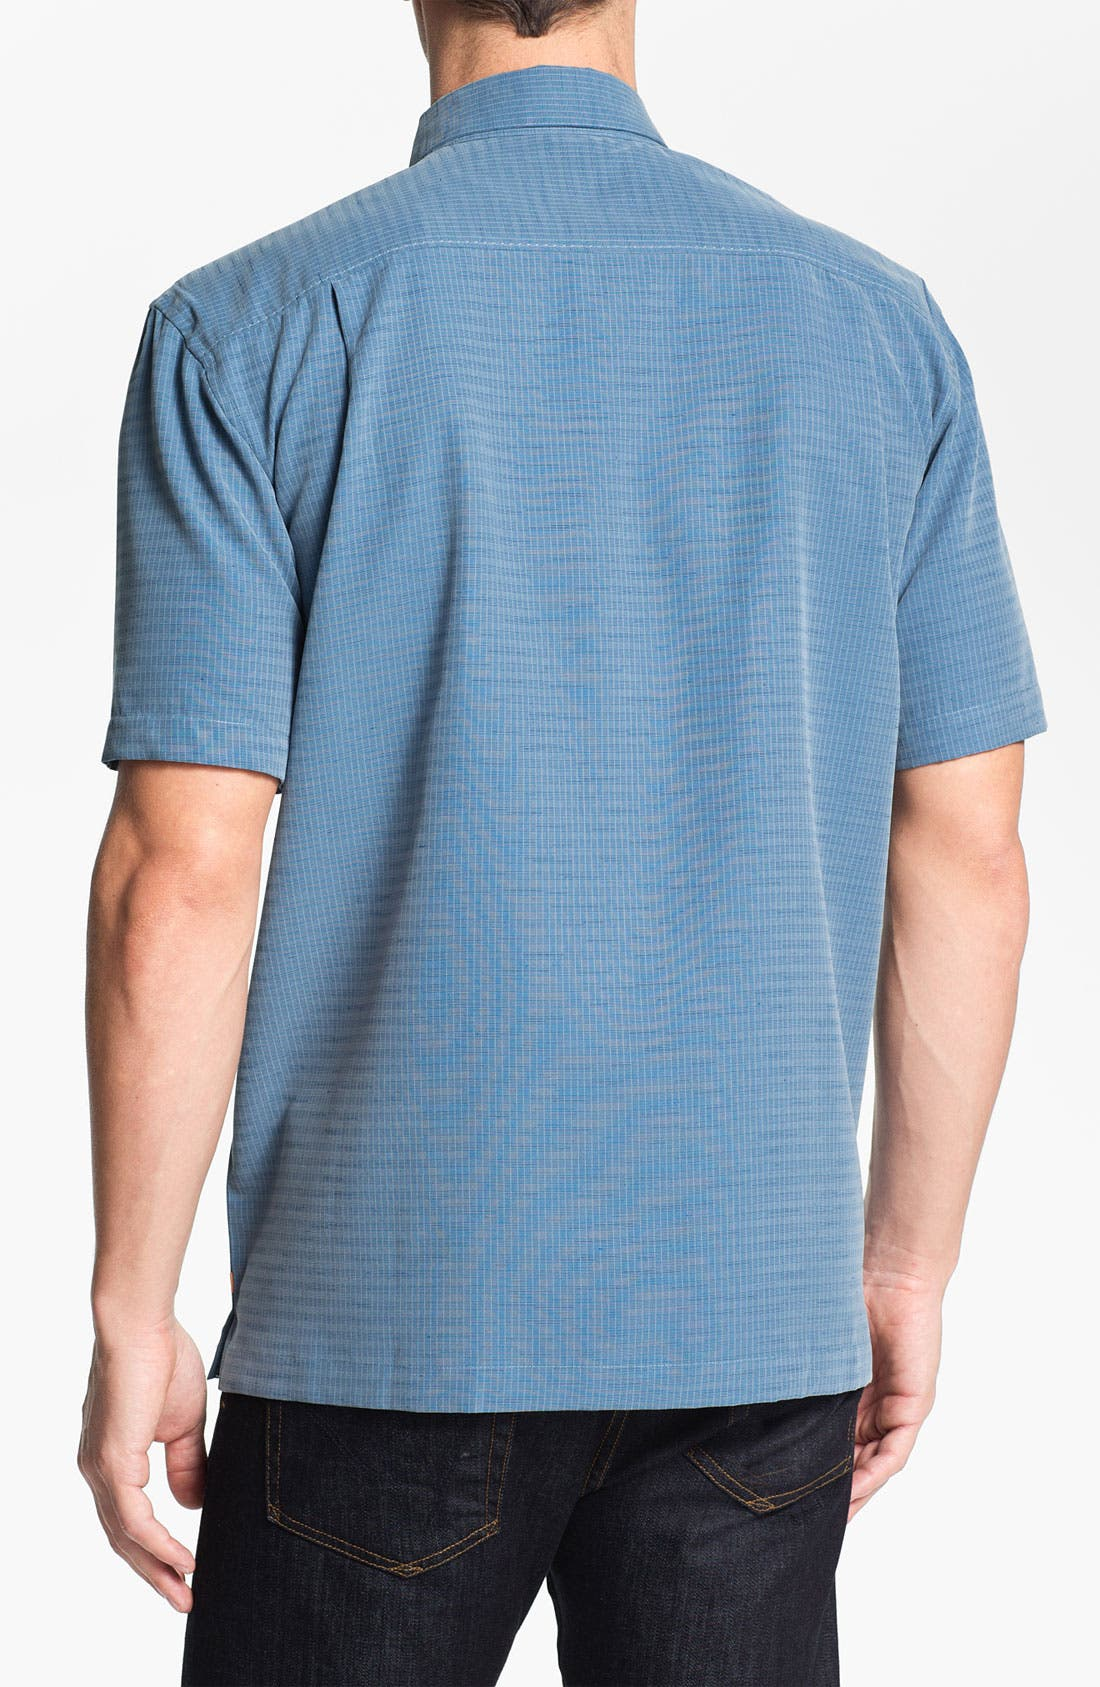 Alternate Image 2  - Quiksilver 'Clearview Cove' Woven Shirt